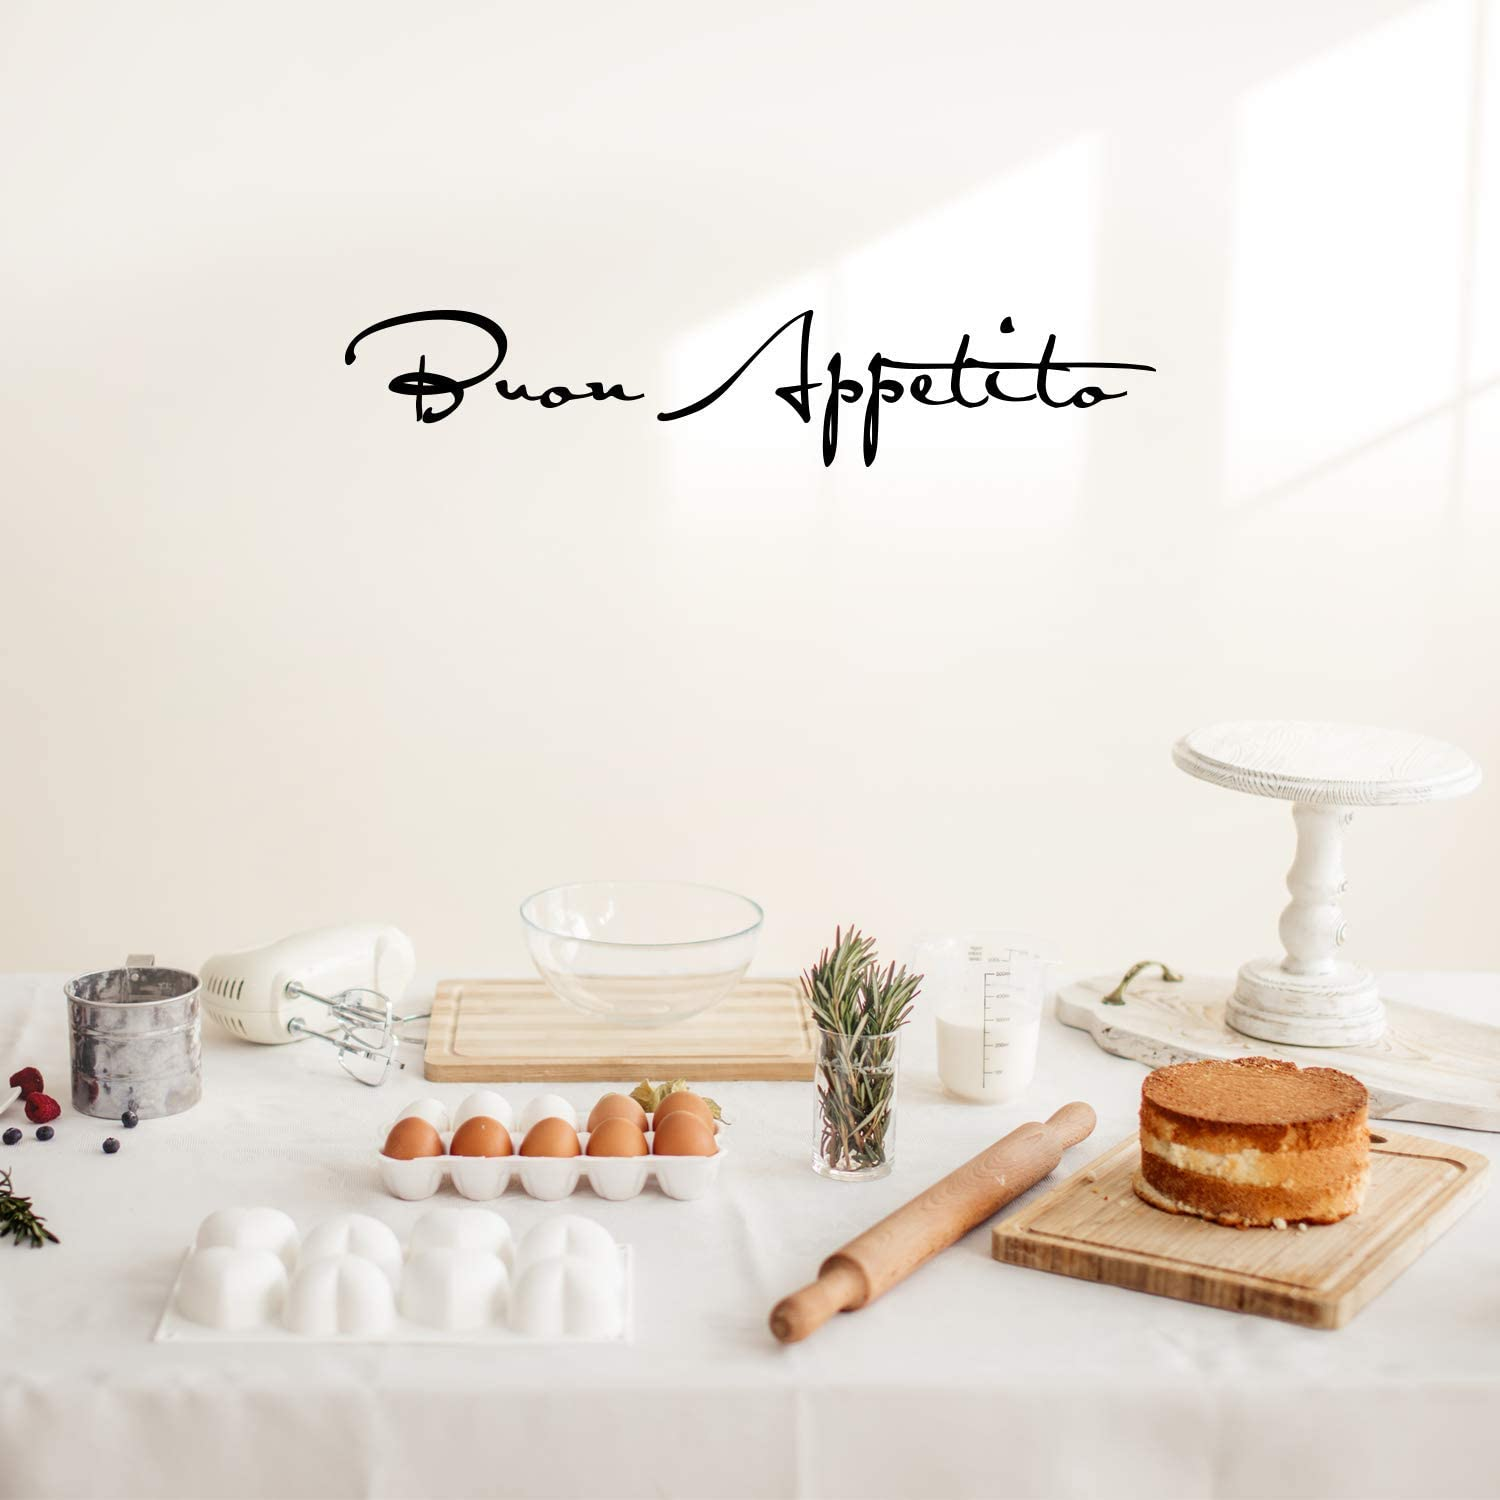 """Vinyl Wall Art Decal - BUON Appetito - 7"""" x 36"""" - Modern Cursive Trendy Home Foodie Treats Kitchen Cafe Pantry Dining Room Apartment Household Restaurant Coffee Shop Eatery Decor"""